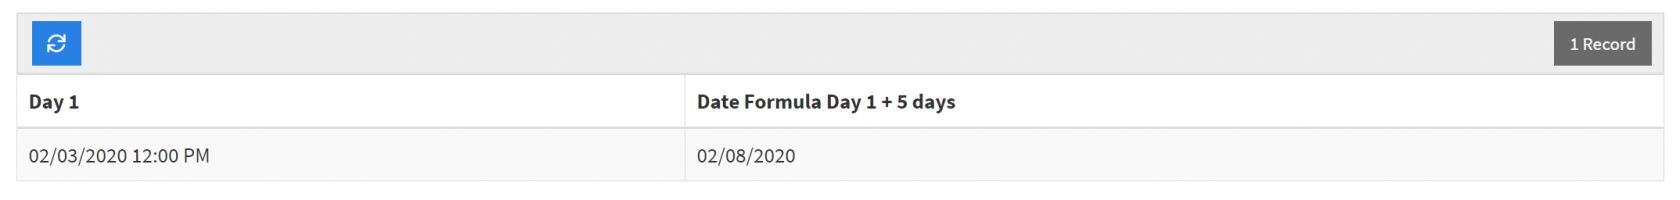 date-formula-day-1-results.png